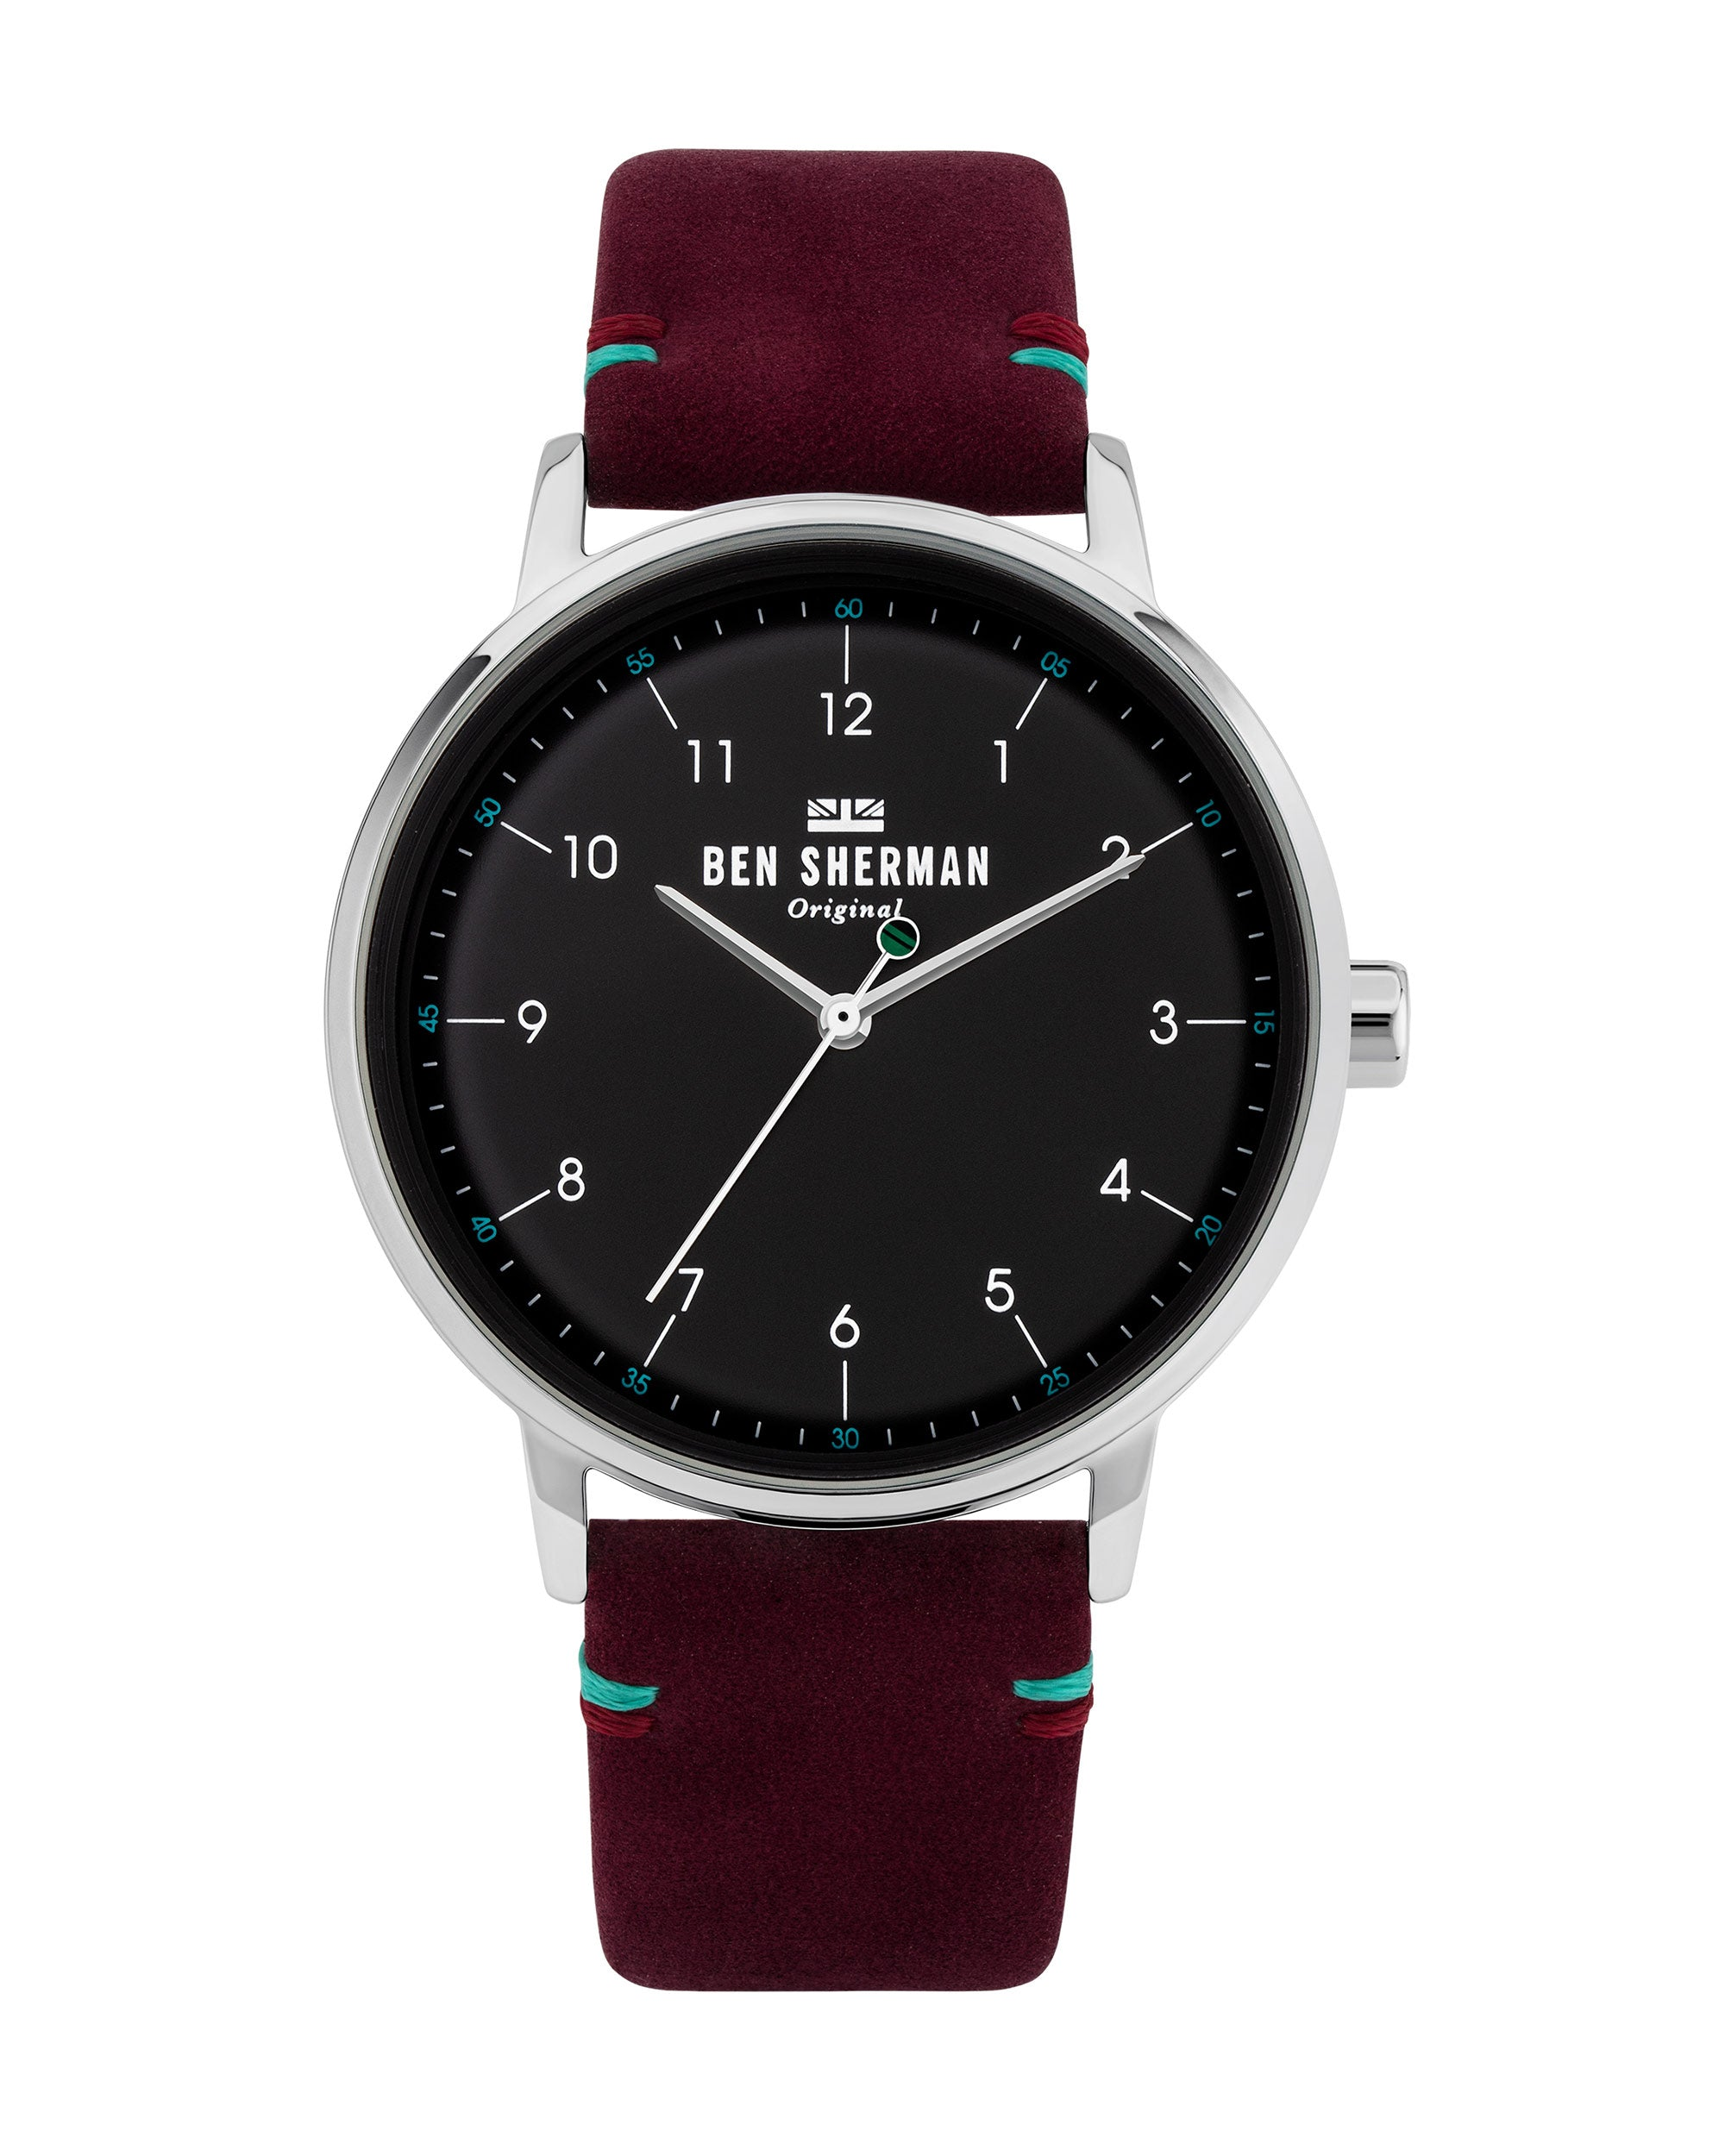 Men's Portobello City Watch - Mulberry/Black/Silver